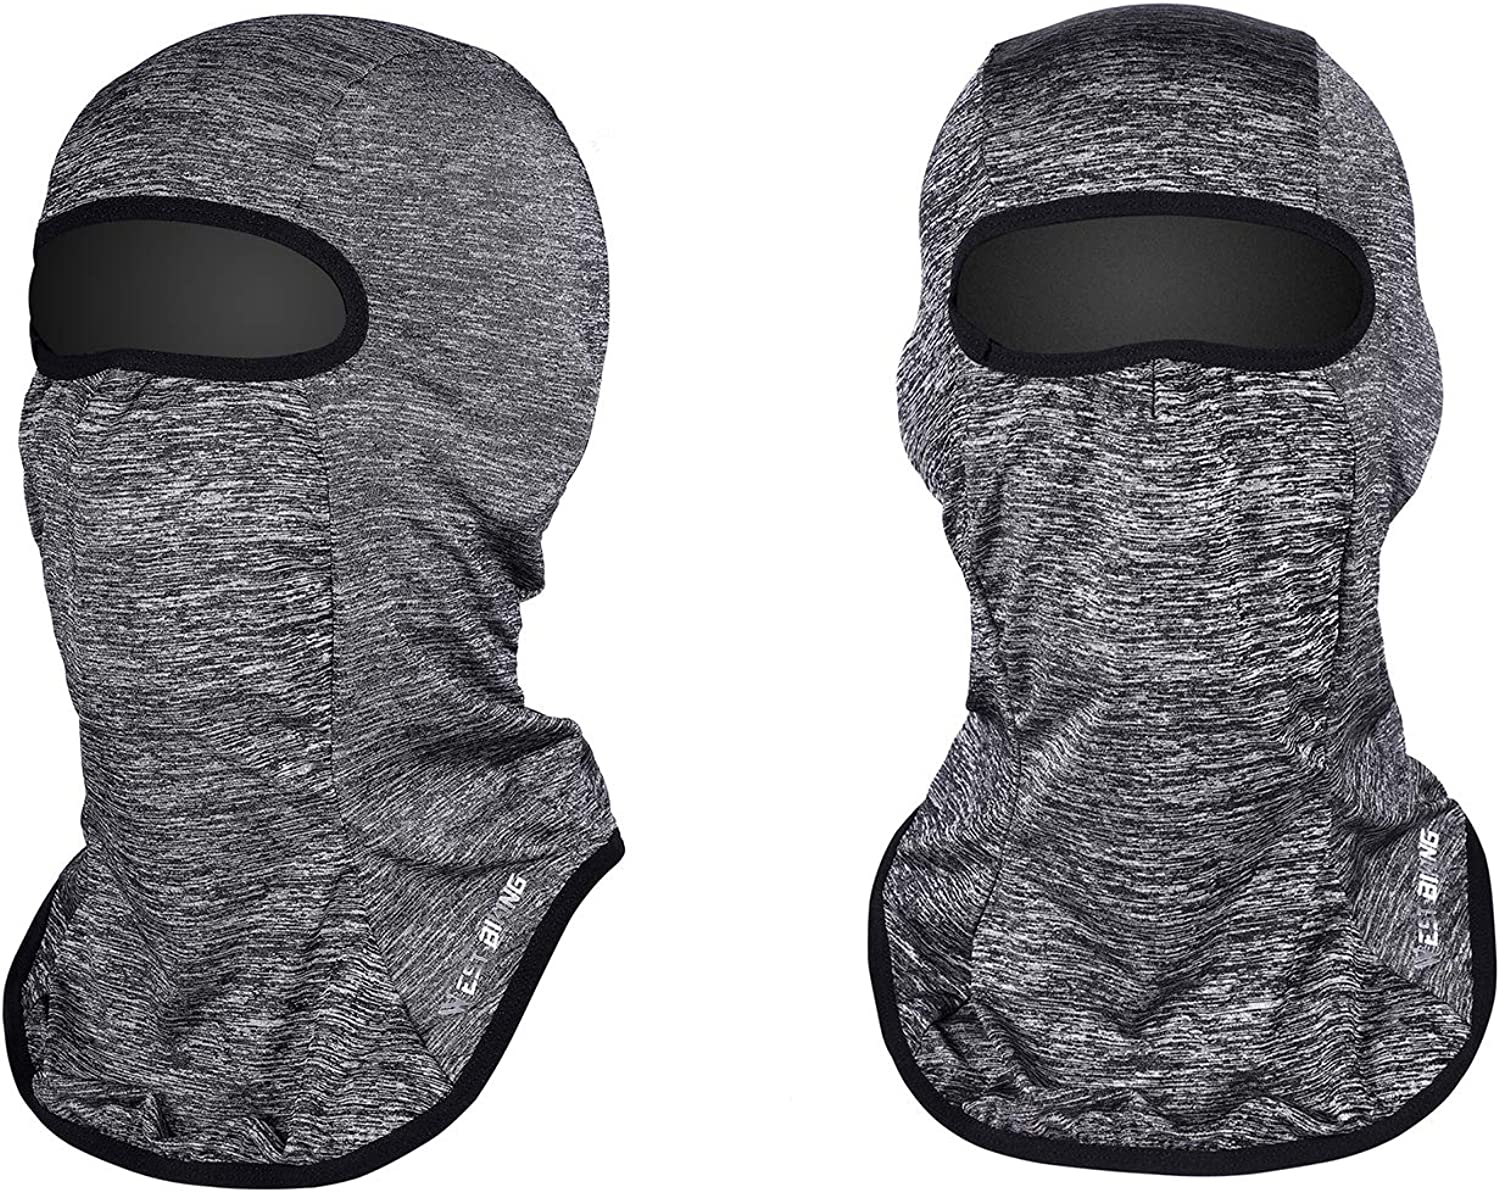 Blaclava UV Protection Dustproof Breathable Cooling Face Mask Neck Gaiter Headwear Running Cycling Motor Mask for Men Women